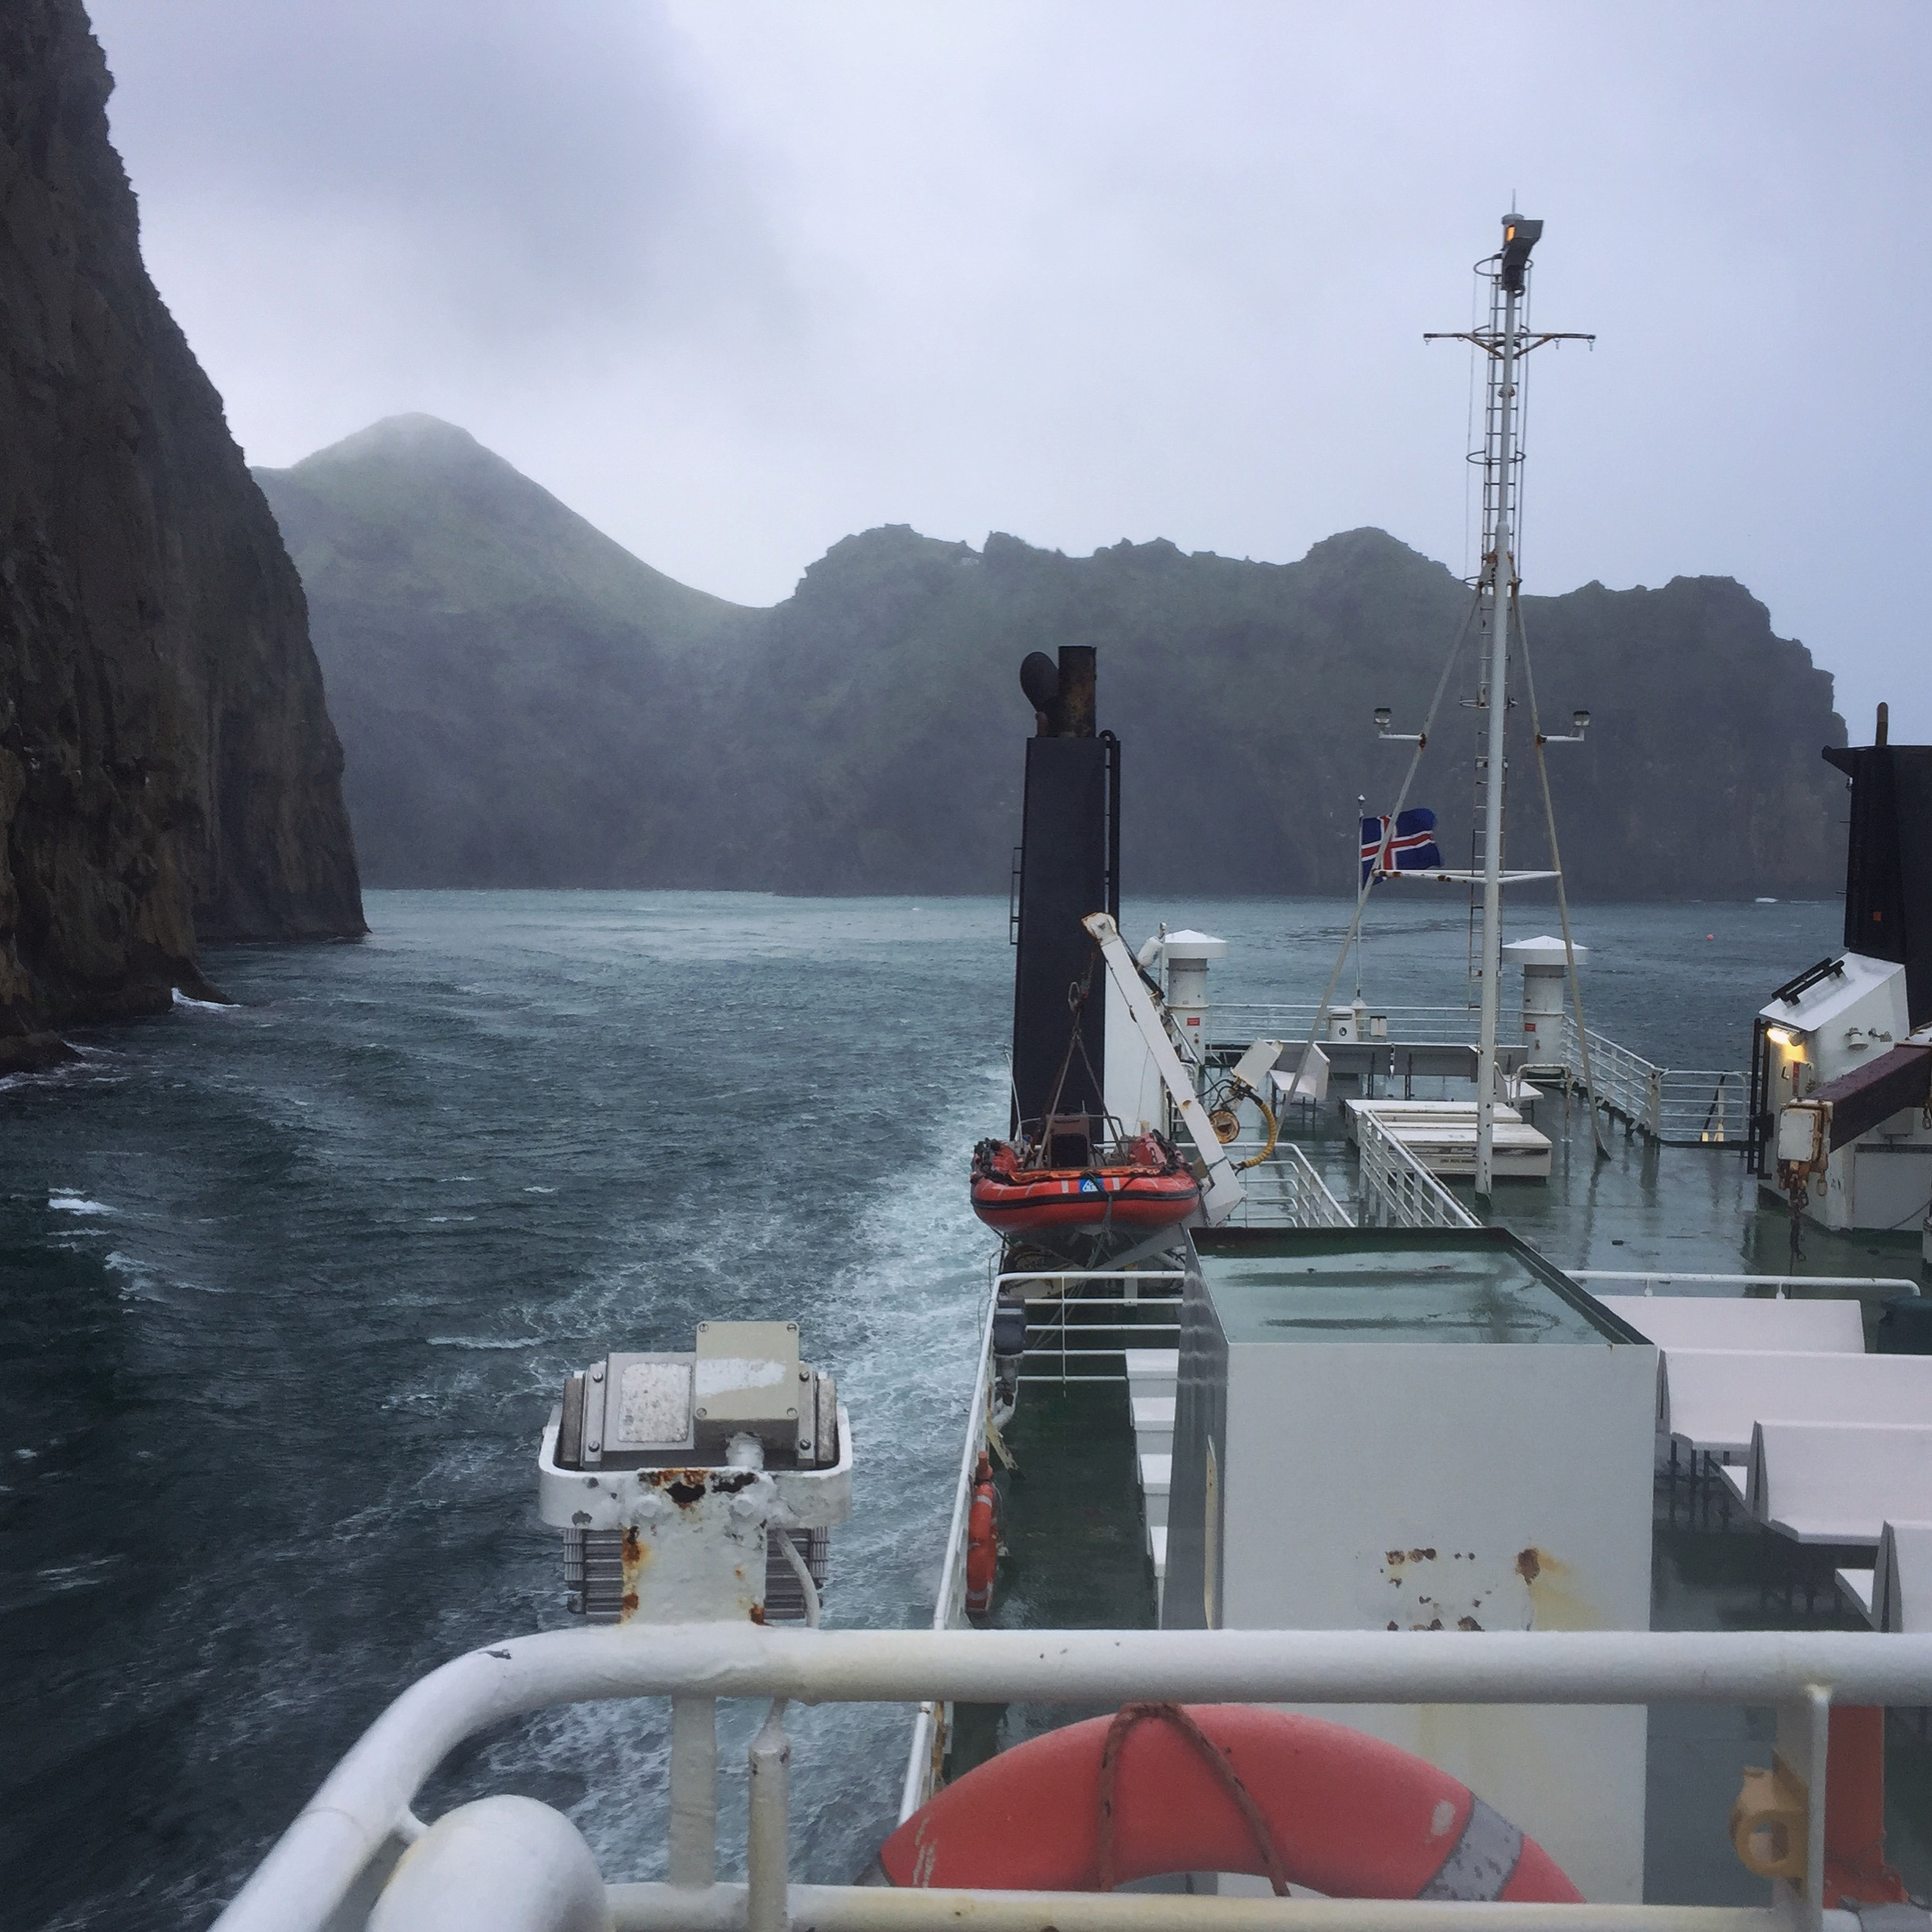 pulling into the harbor at Vestmannaeyjar off the southern coast of Iceland